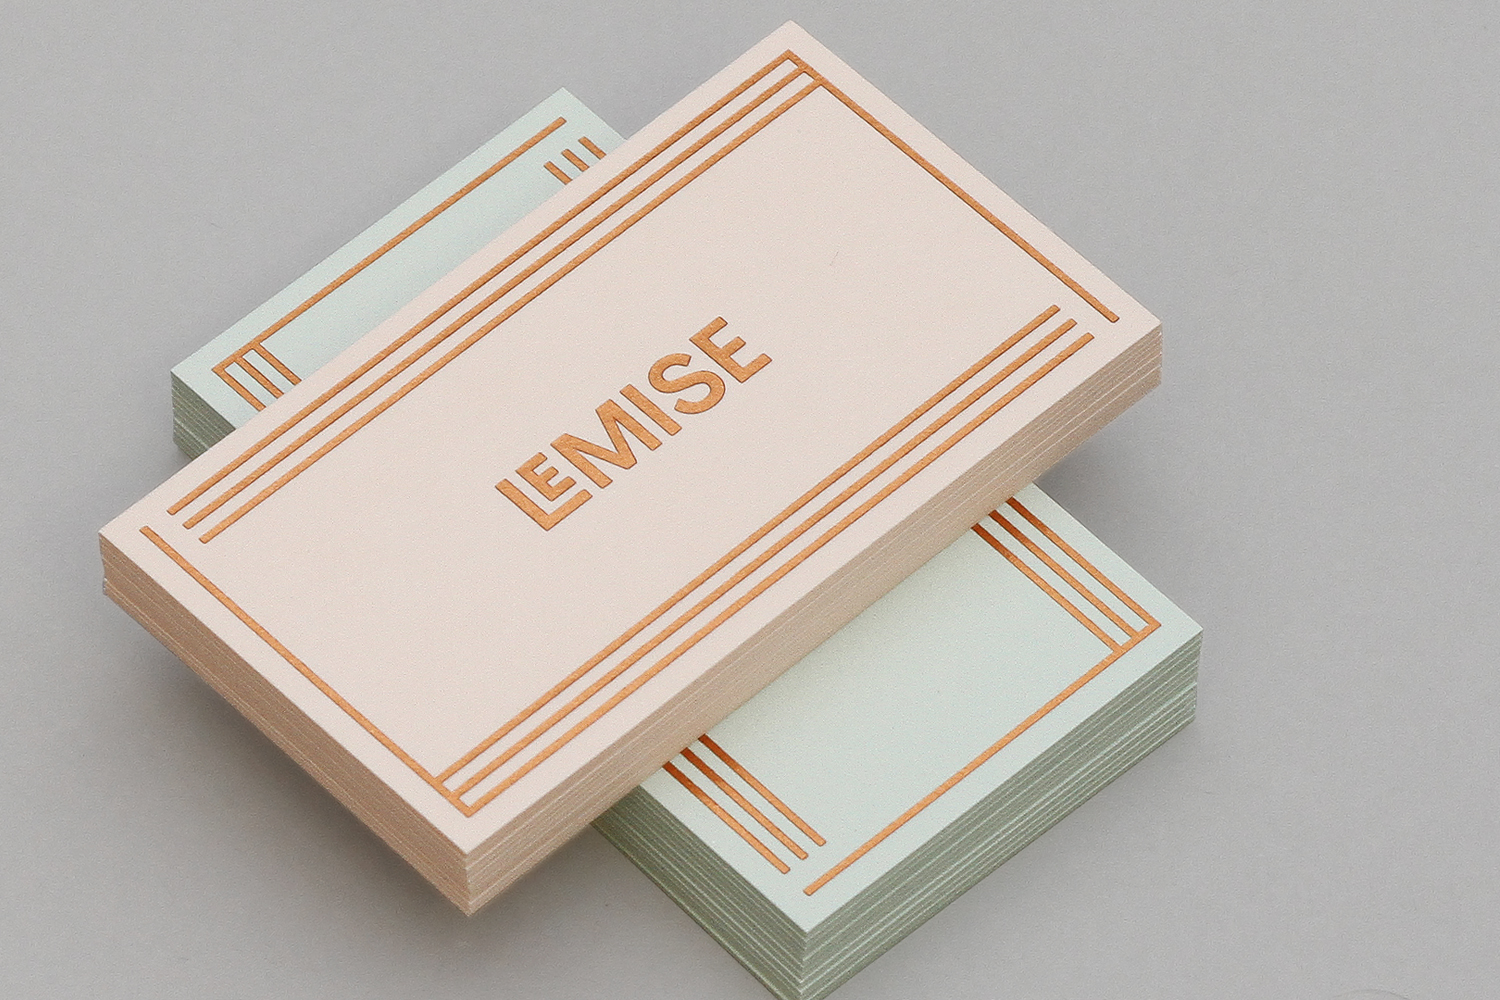 Business cards for NY gallery LeMise by DIA. These feature a copper block foil over pastel substrates.